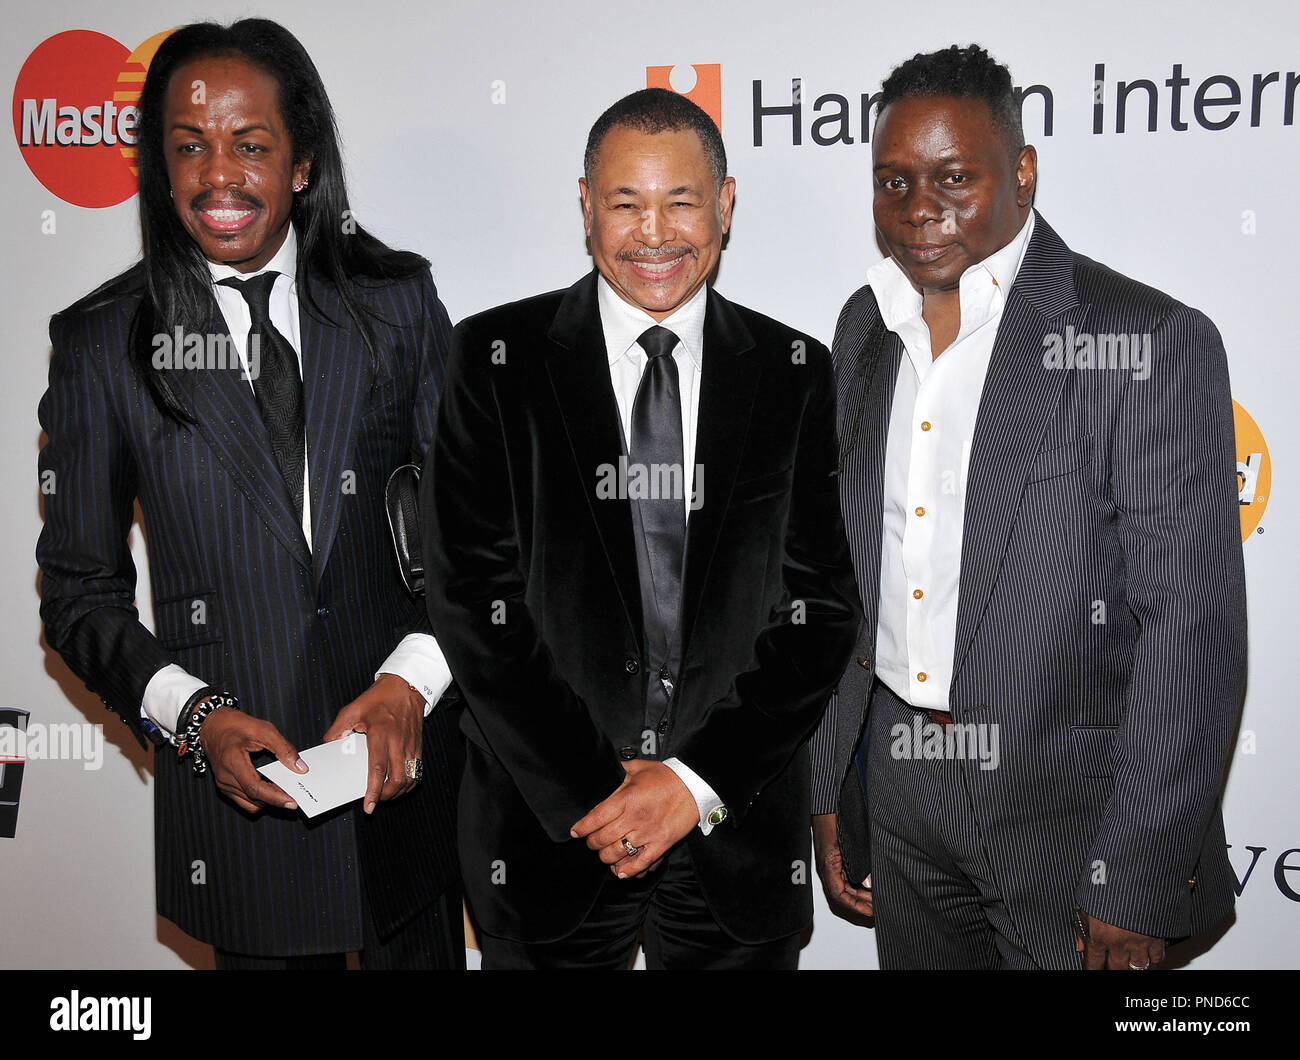 Earth, Wind & Fire at The Recording Academy and Clive Davis 2010 Pre-Grammy Gala held at the Beverly Hilton Hotel in Beverly Hills, CA. The event took place on Saturday, January 30, 2010. Photo by PRPP_Pacific Rim Photo Press. /PictureLux File Reference # Earth_Wind_Fire_13010PLX   For Editorial Use Only -  All Rights Reserved - Stock Image